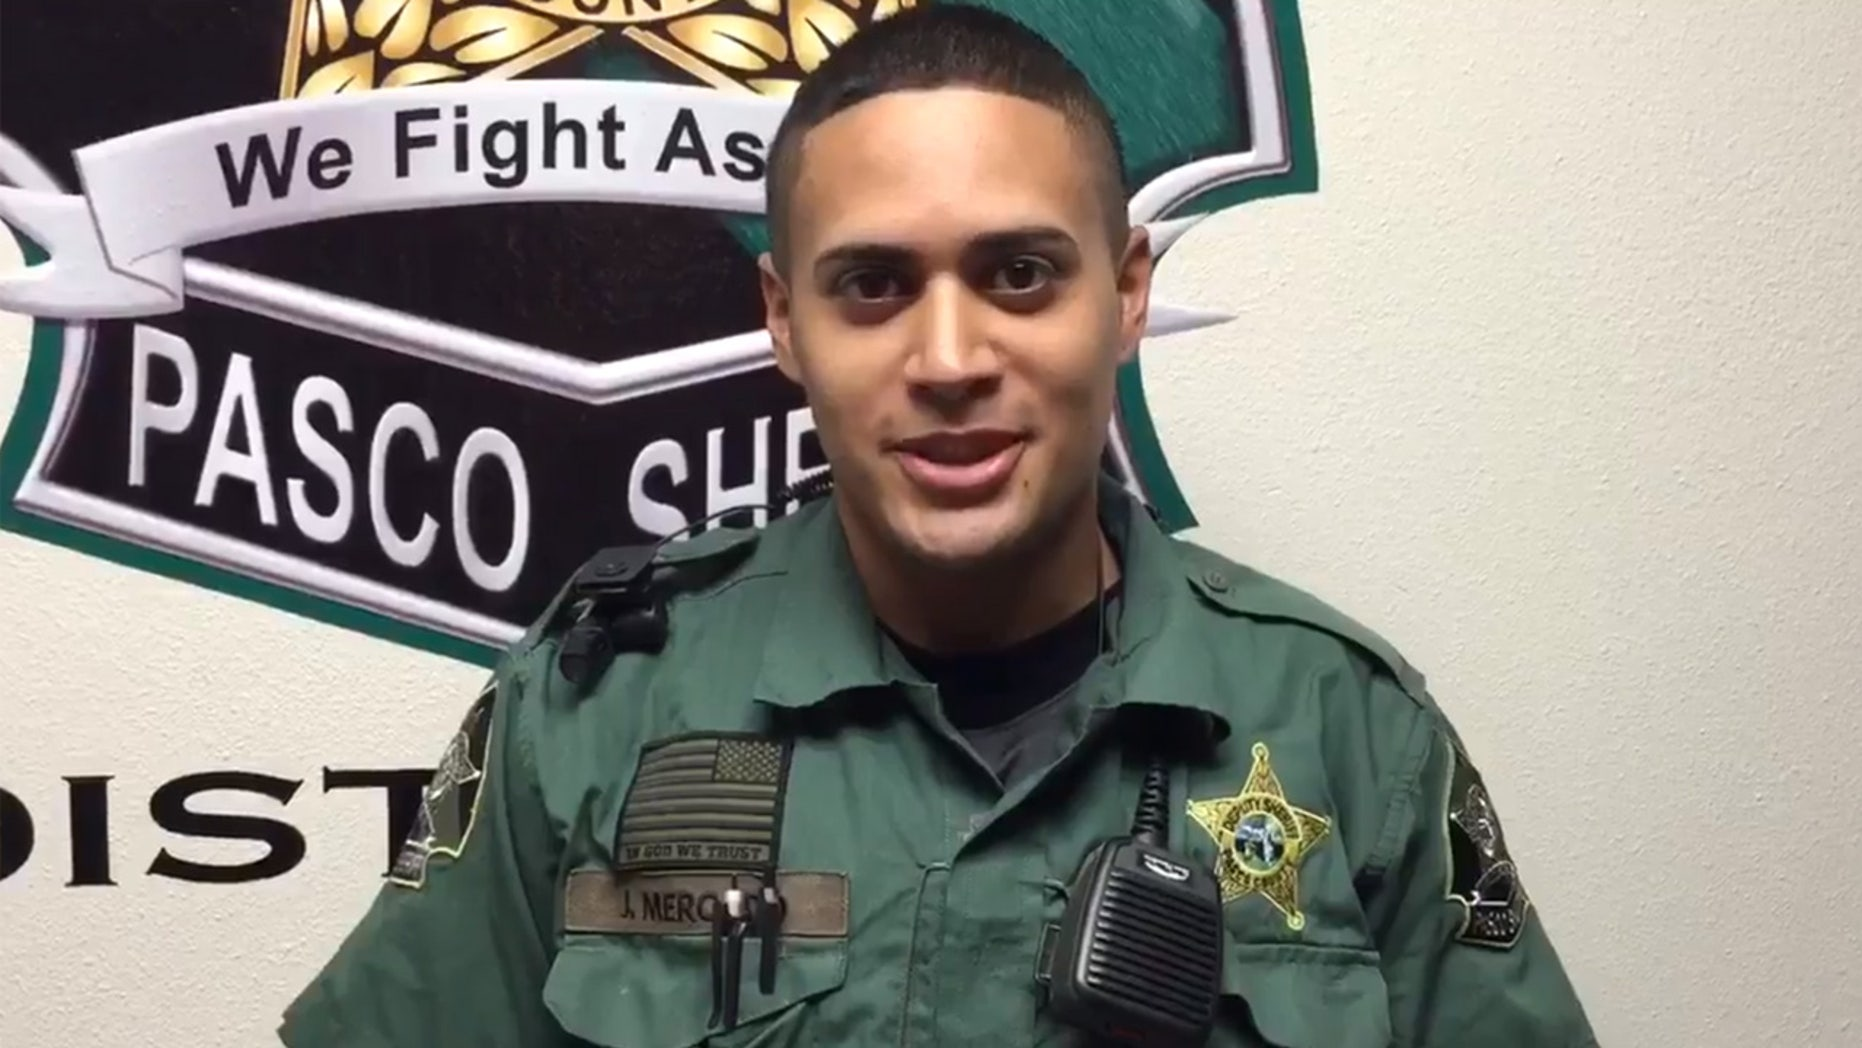 Pasco County Sheriff Deputy Joseph Mercado. was recently fired over an alleged lewd sexual act.